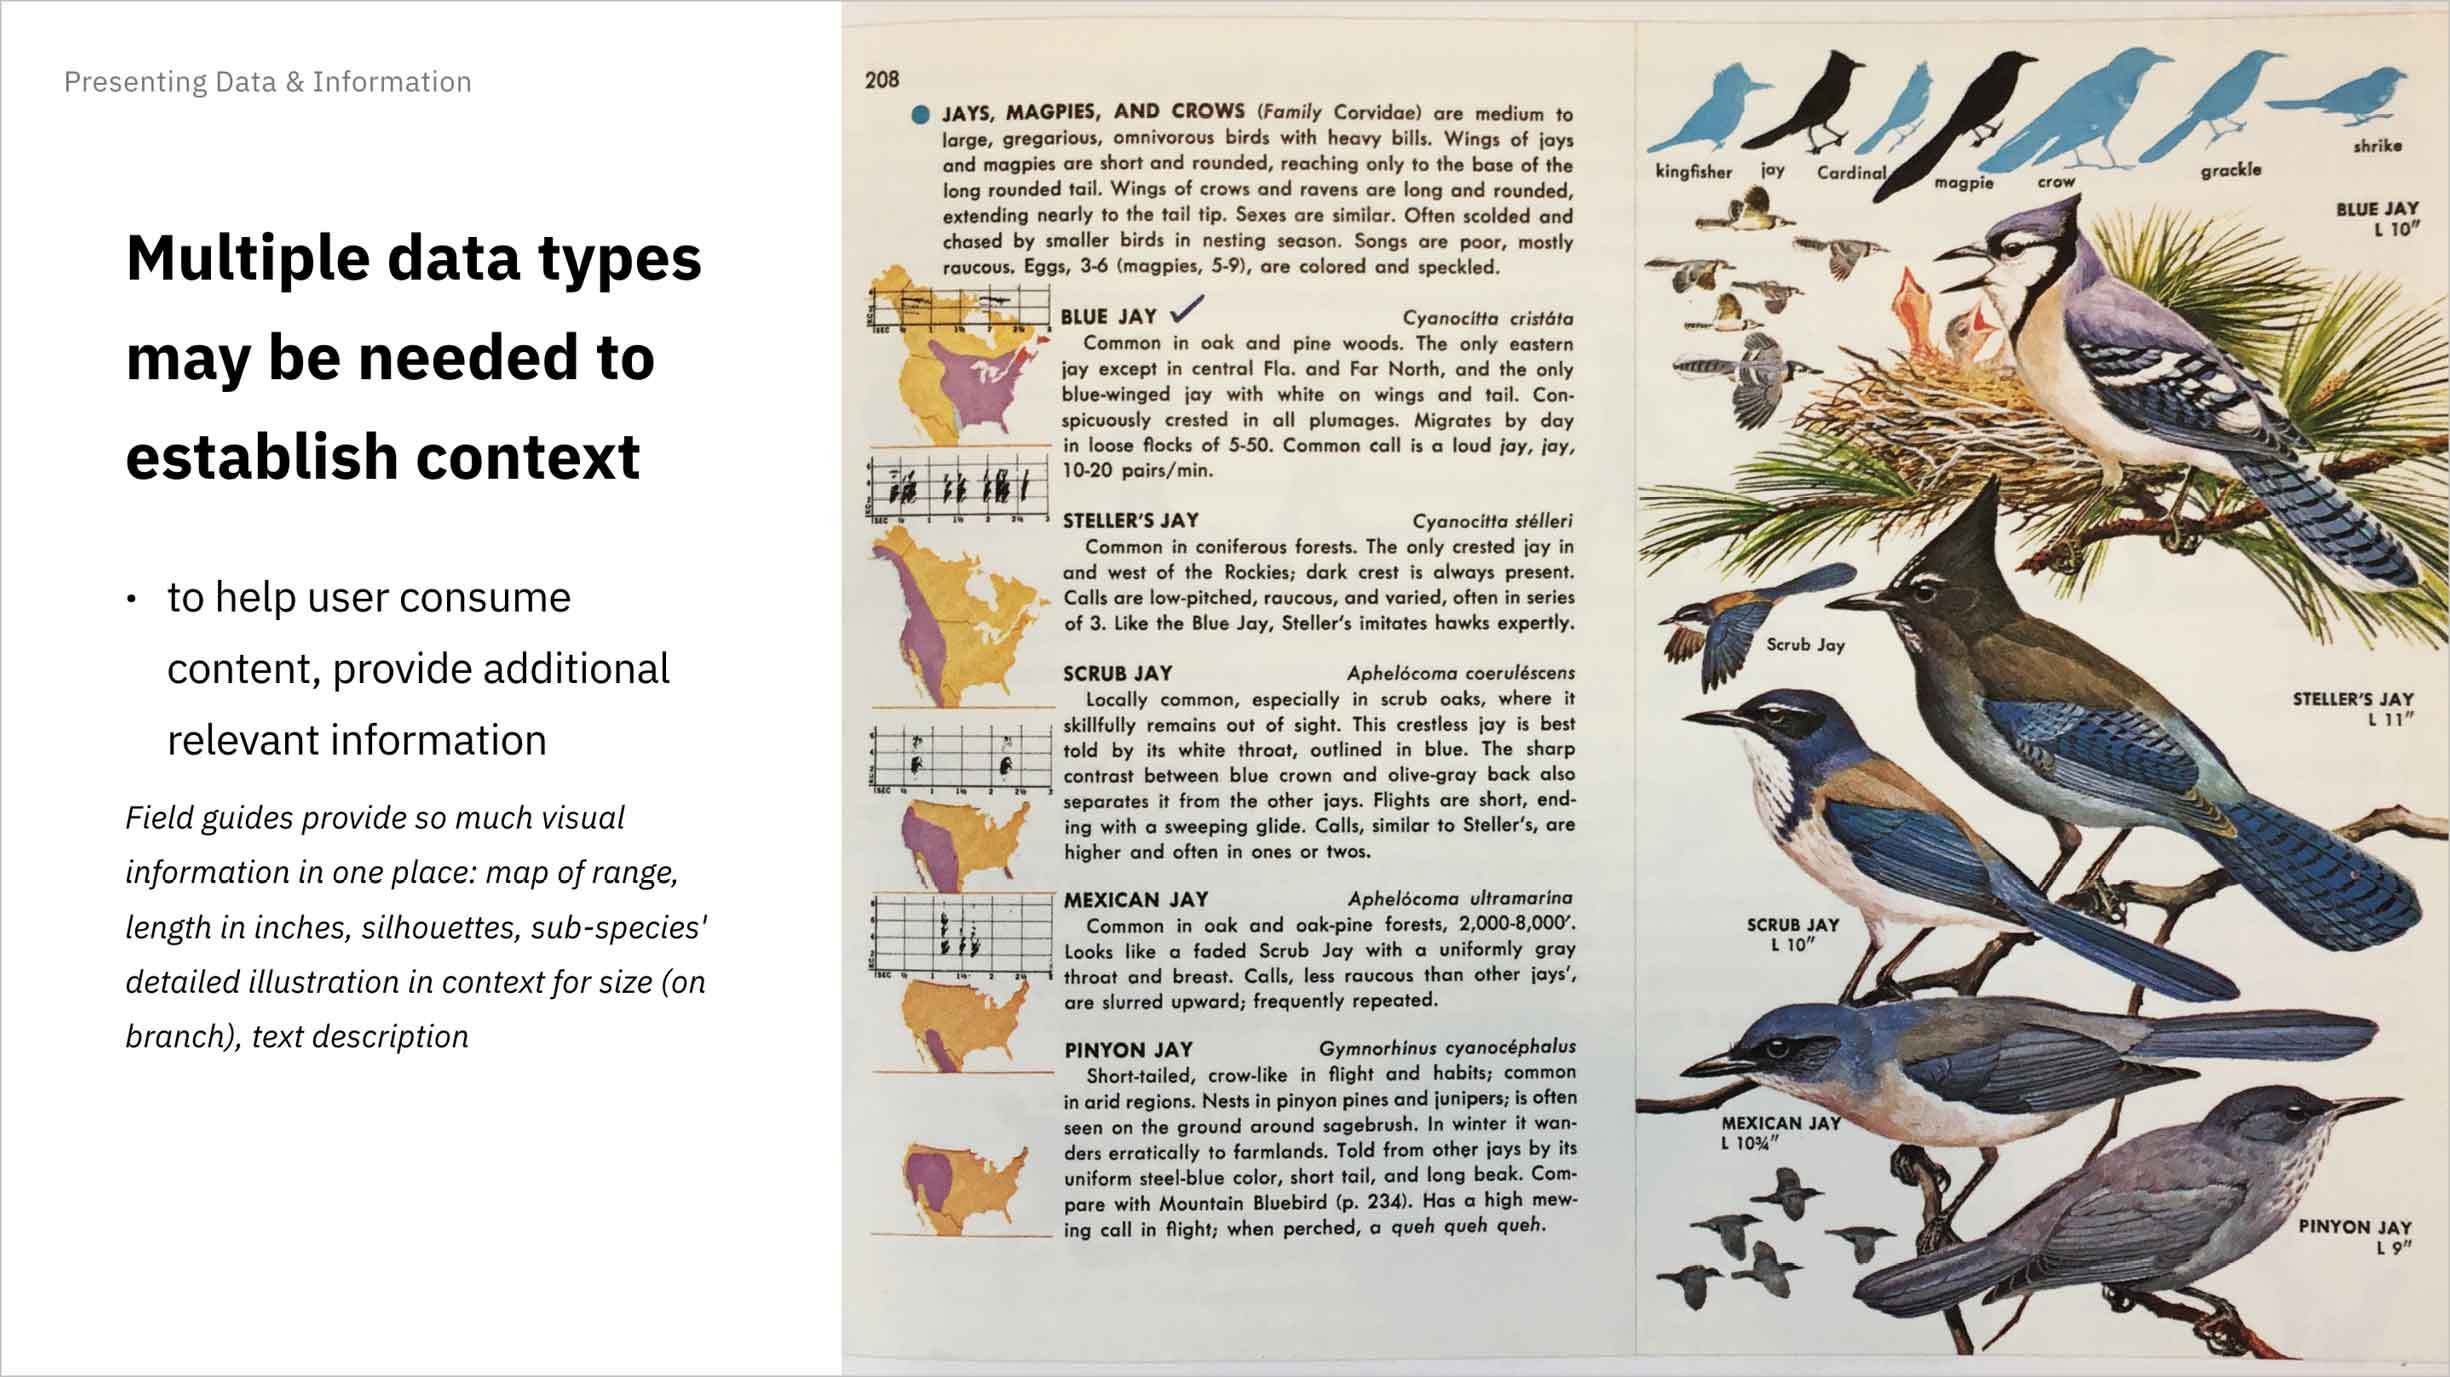 Multiple data types may be needed to establish context: field guides illustrate birds in detail, show them as silhouettes, provide a map of their ranges, and even have written musical charts describing their songs!